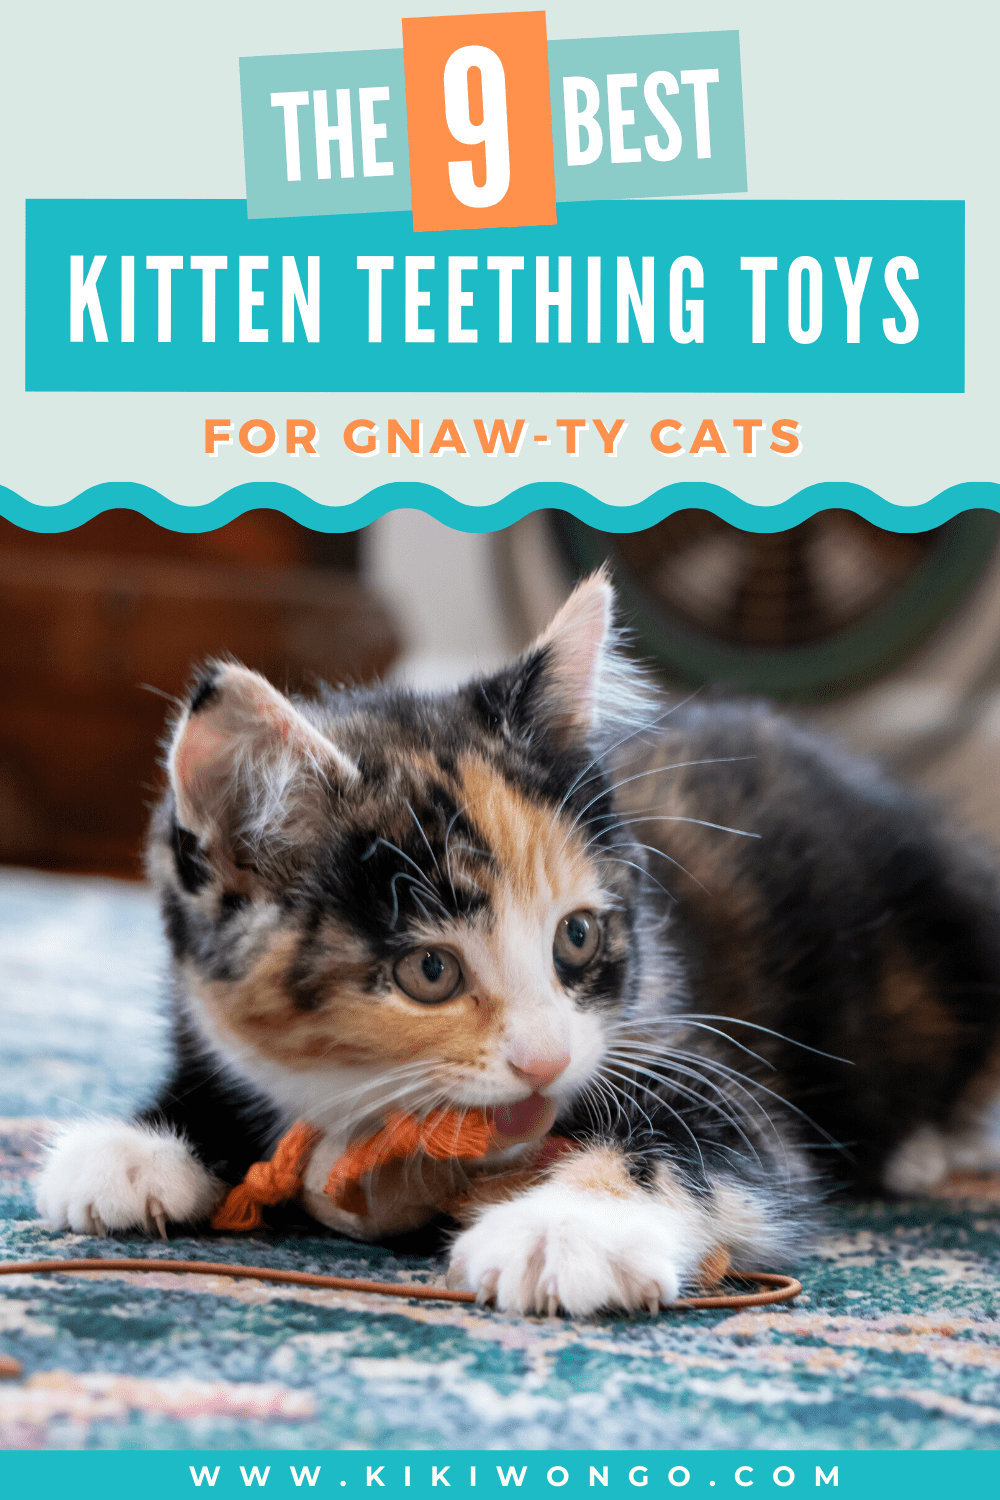 The 9 Best Kitten Teething Toys For Gnaw Ty Cats In 2020 Kitten Teething Toys Kitten Care Teething Toys